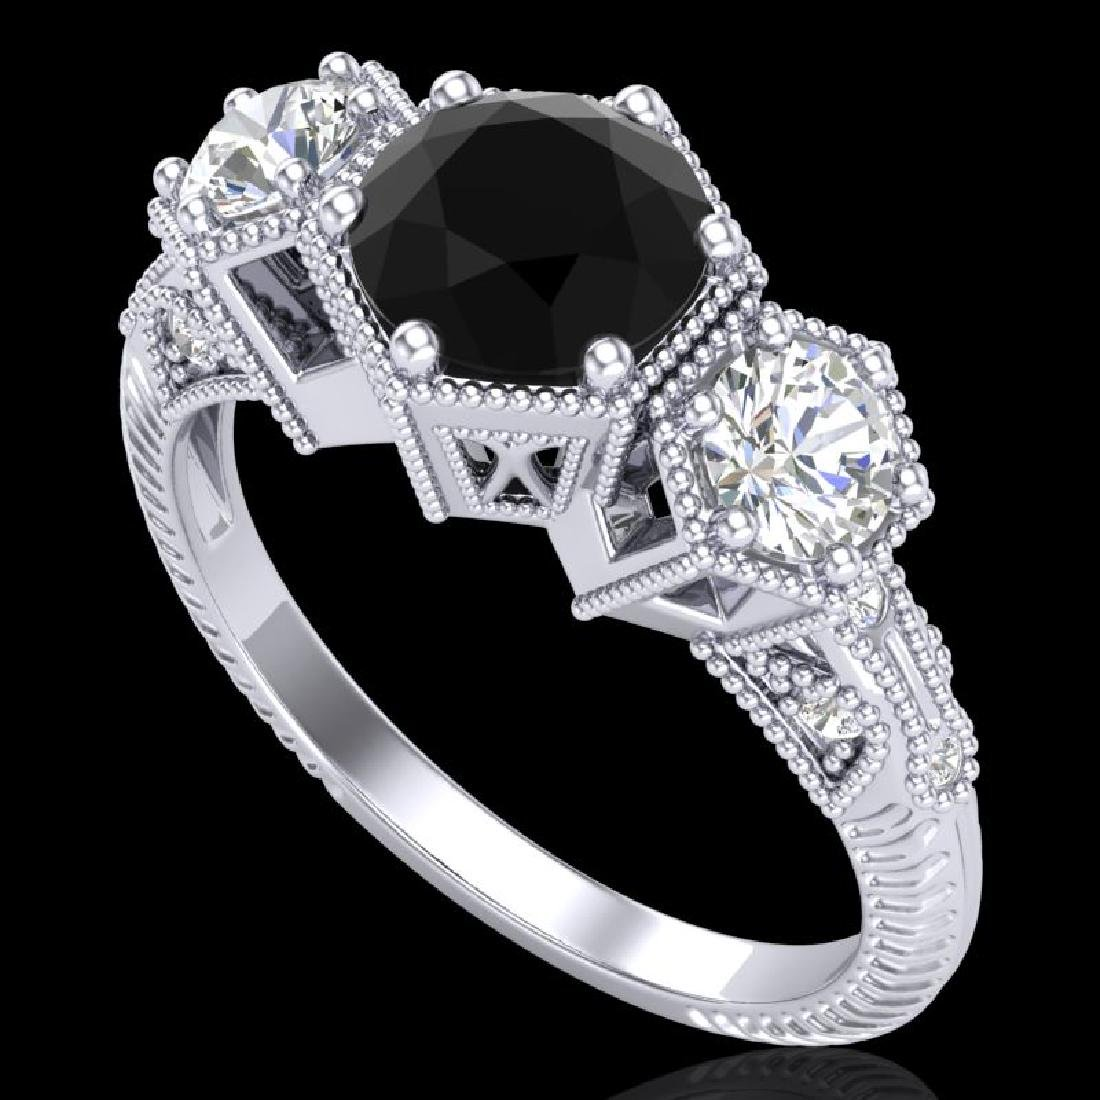 1.66 CTW Fancy Black Diamond Solitaire Art Deco 3 Stone